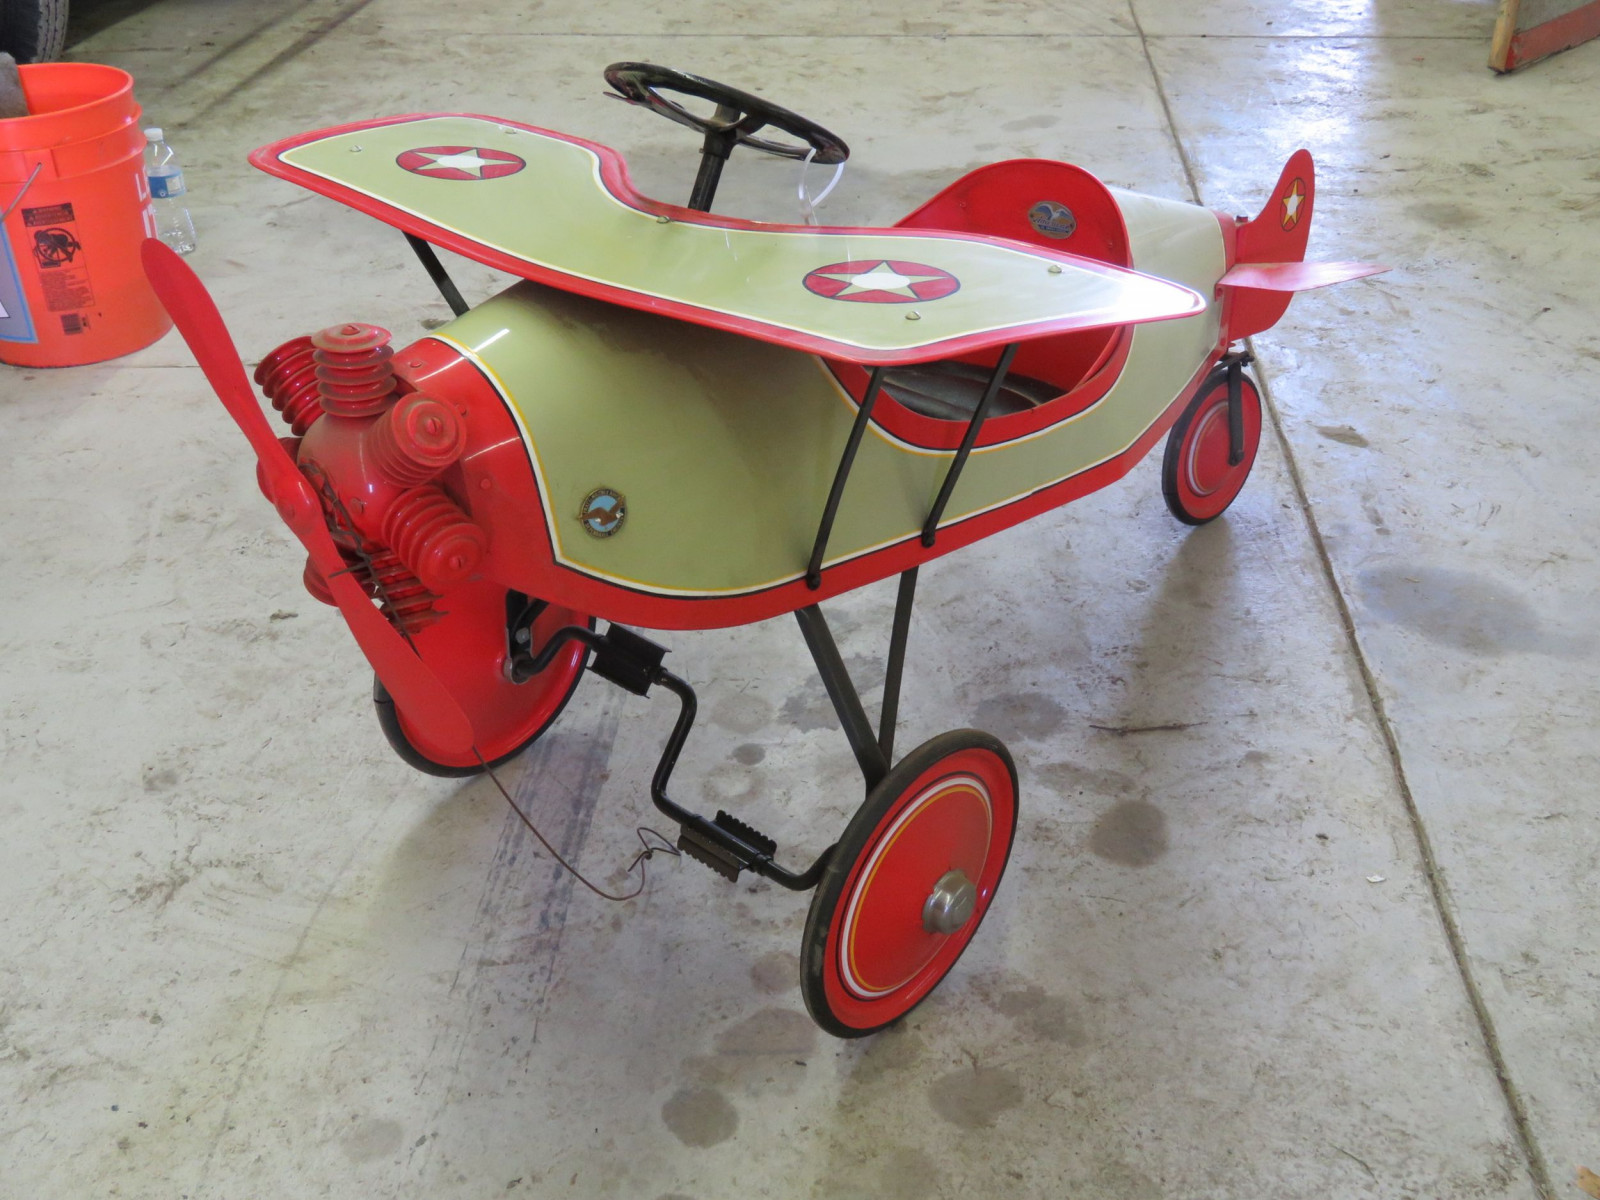 Homemade Spirit of St. Louis Pedal Airplane - Image 1